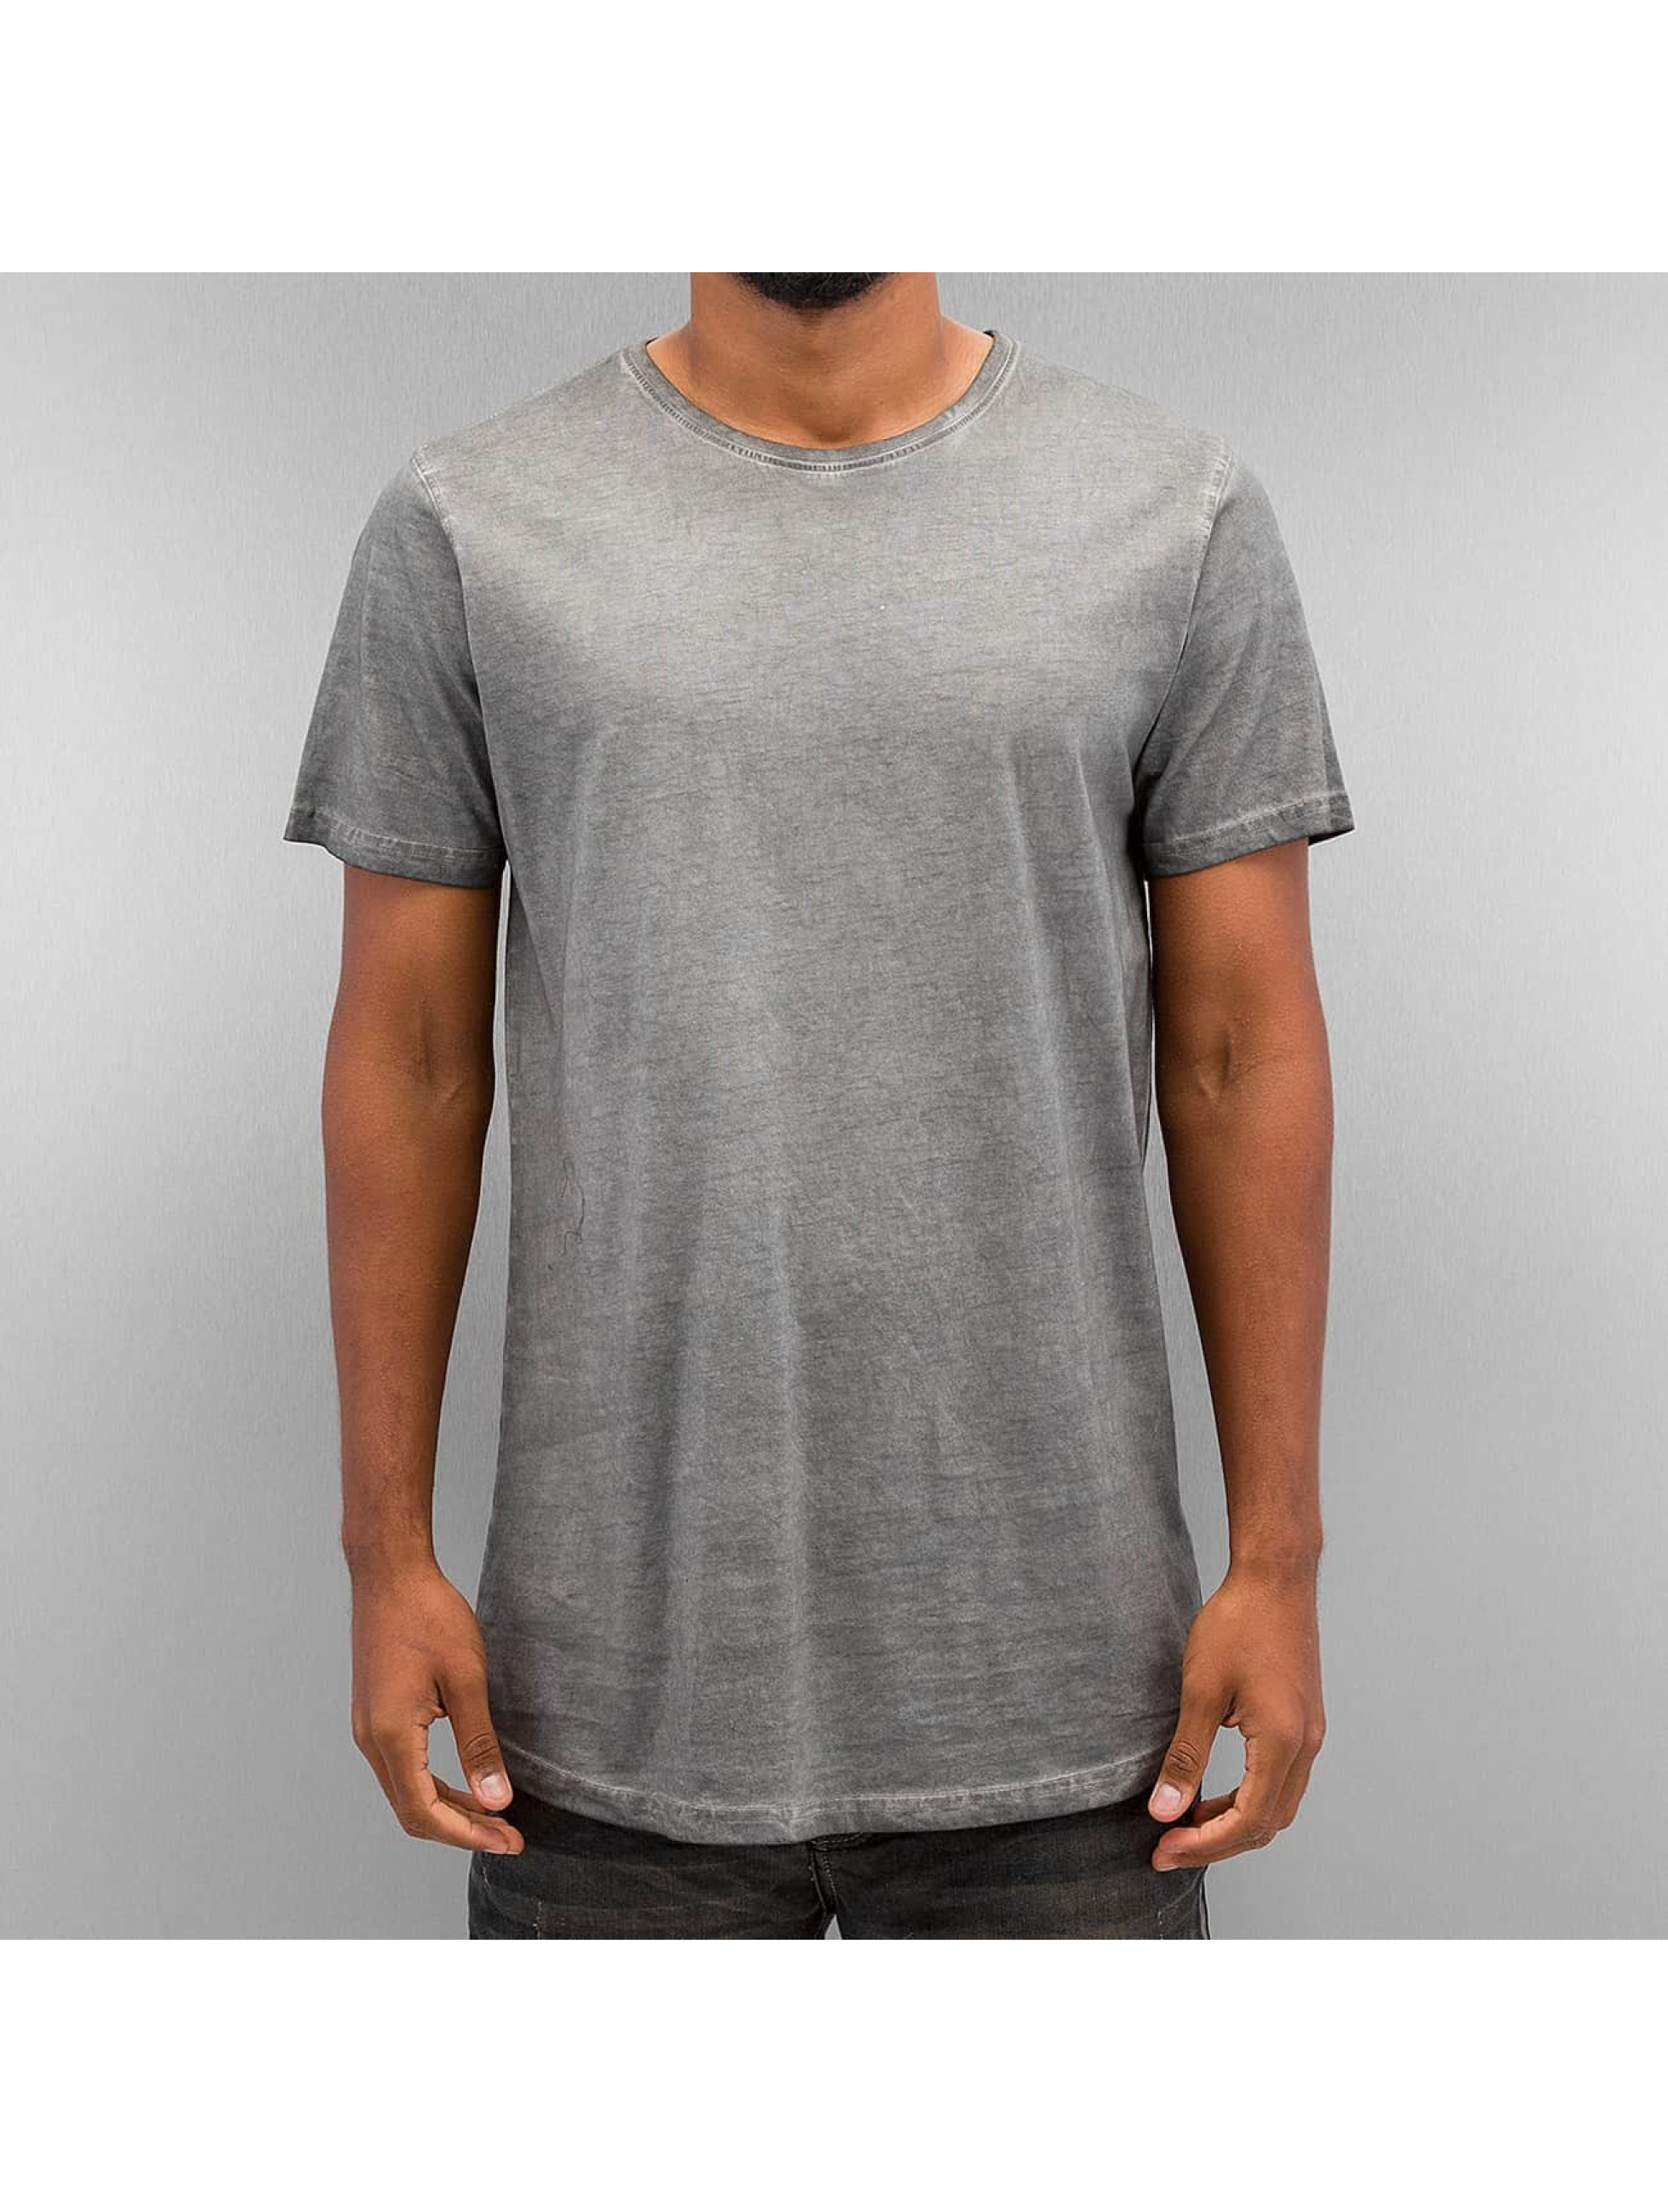 Urban Classics T-Shirt Shaped Long Cold Dye grey